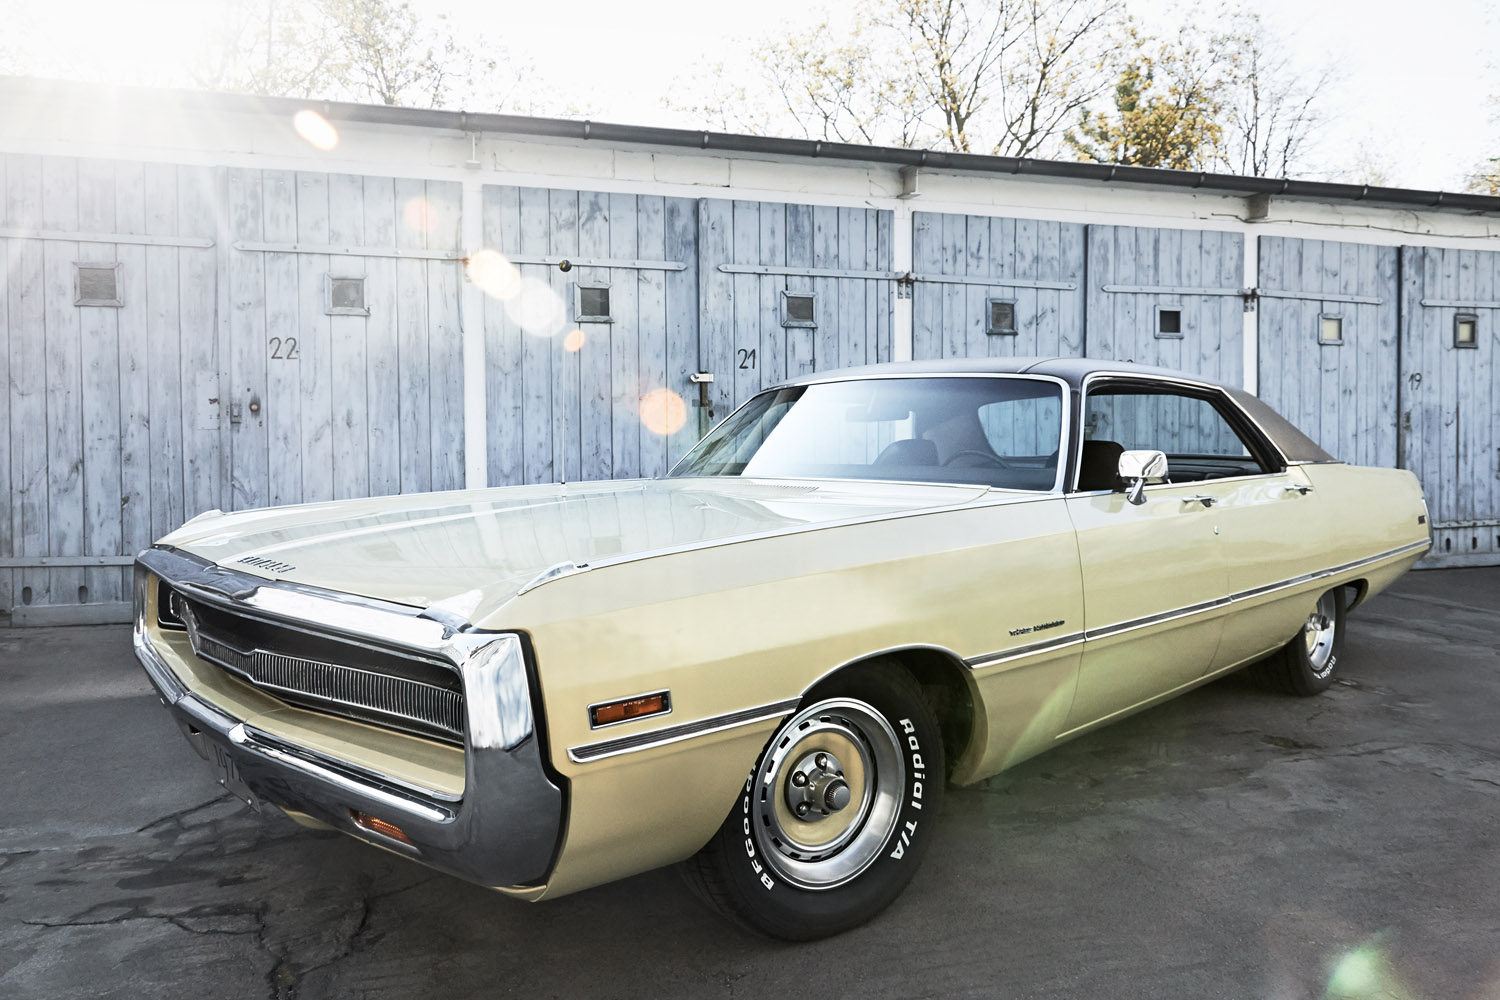 JustCarried_Chrysler300__SUP6329-WEB